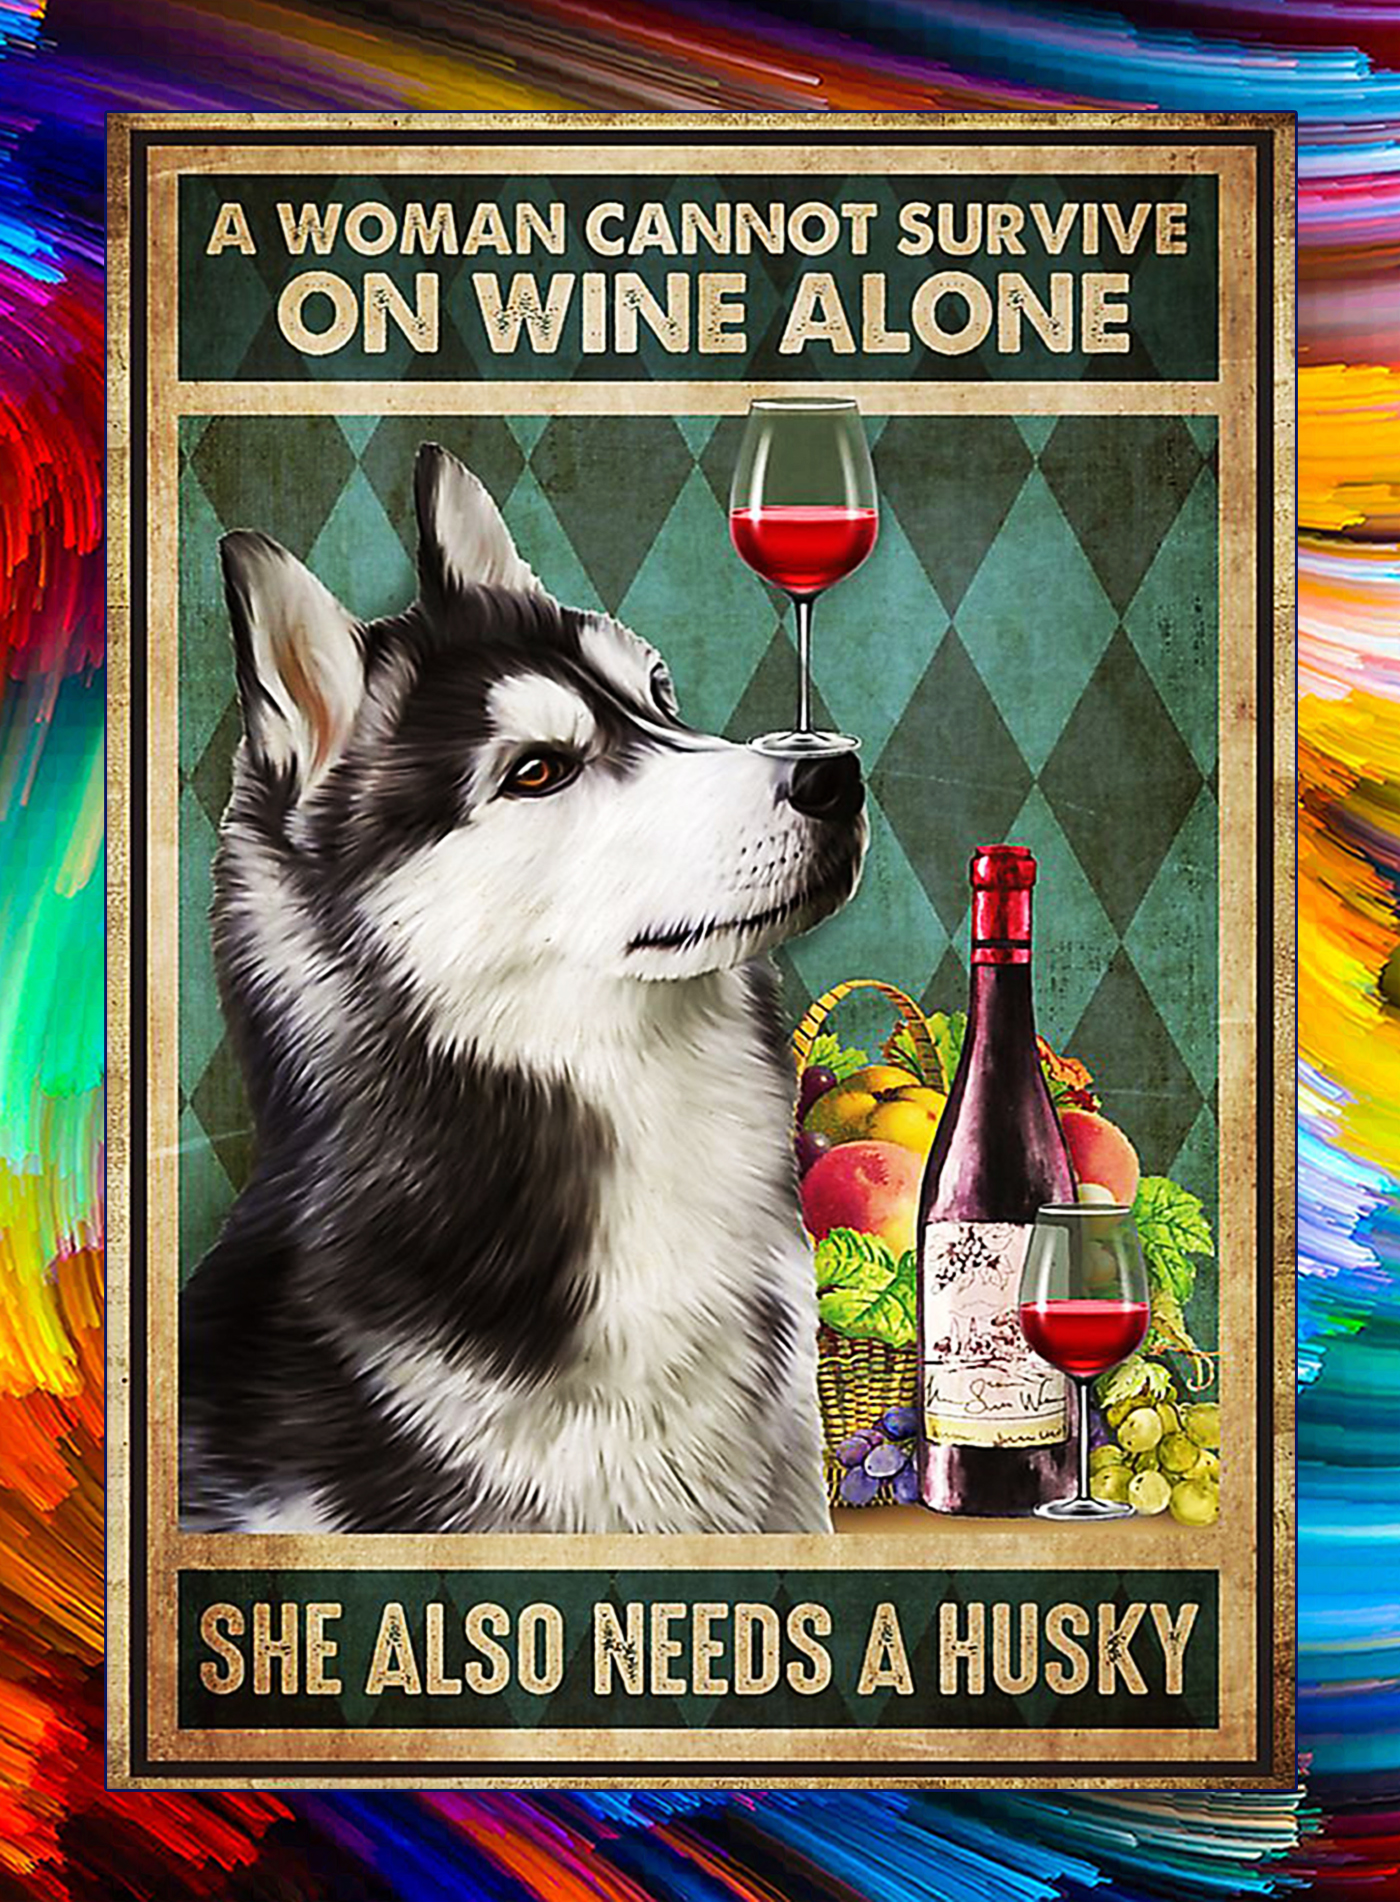 A woman cannot survive on wine alone she also needs a husky poster - A1